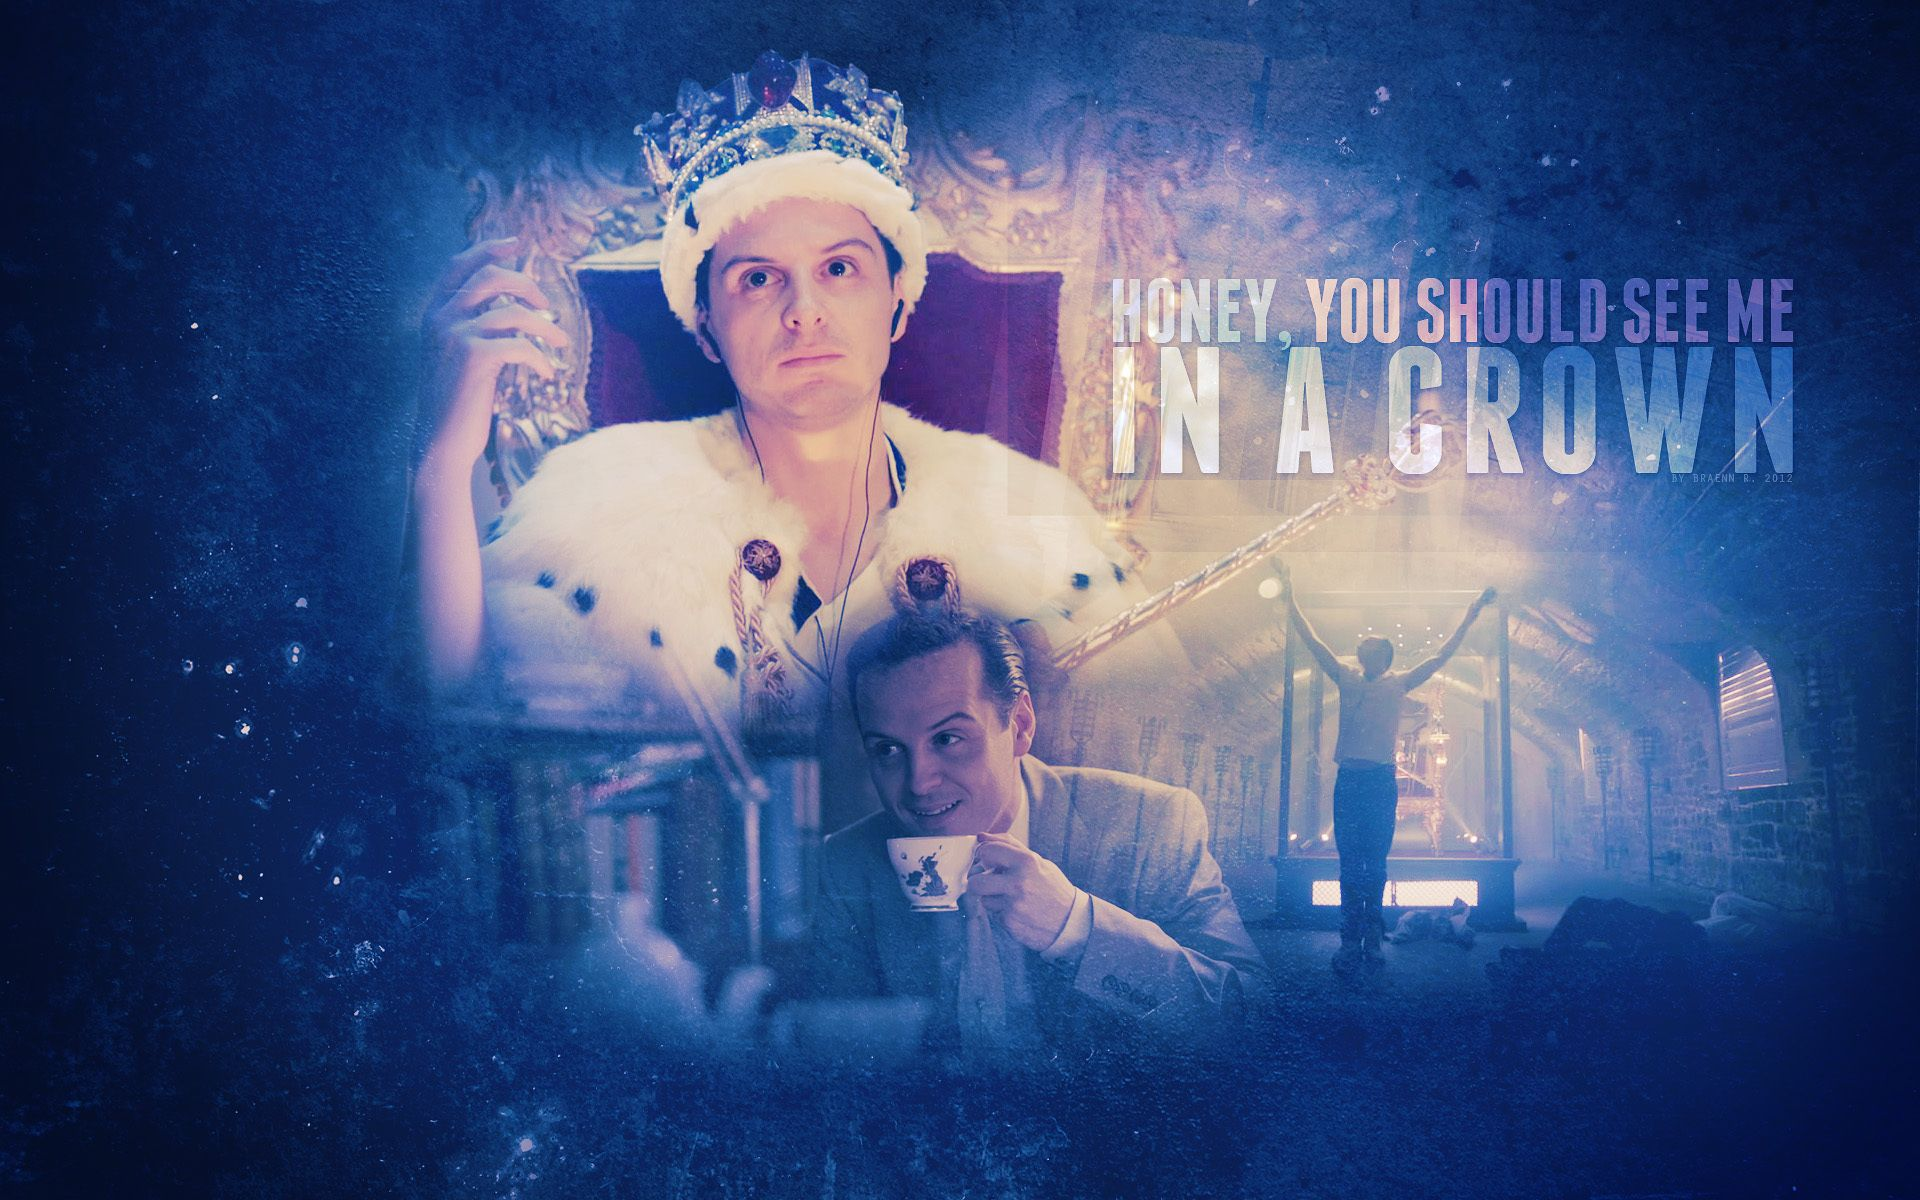 jim moriarty images hd - photo #2